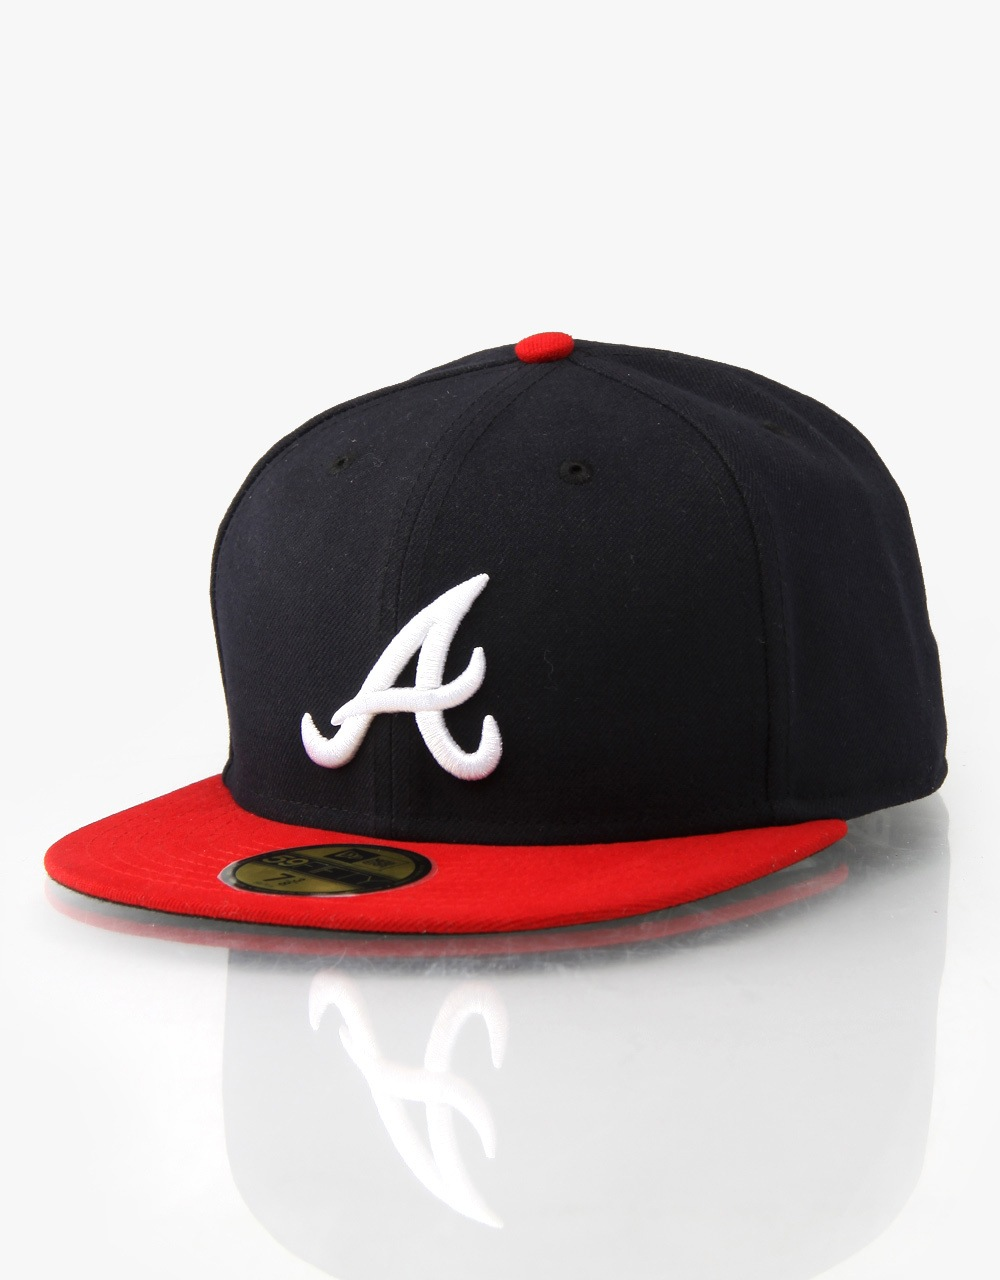 New Era 59Fifty MLB Atlanta Braves Fitted Cap - Navy Red White ... e7243c59afc5